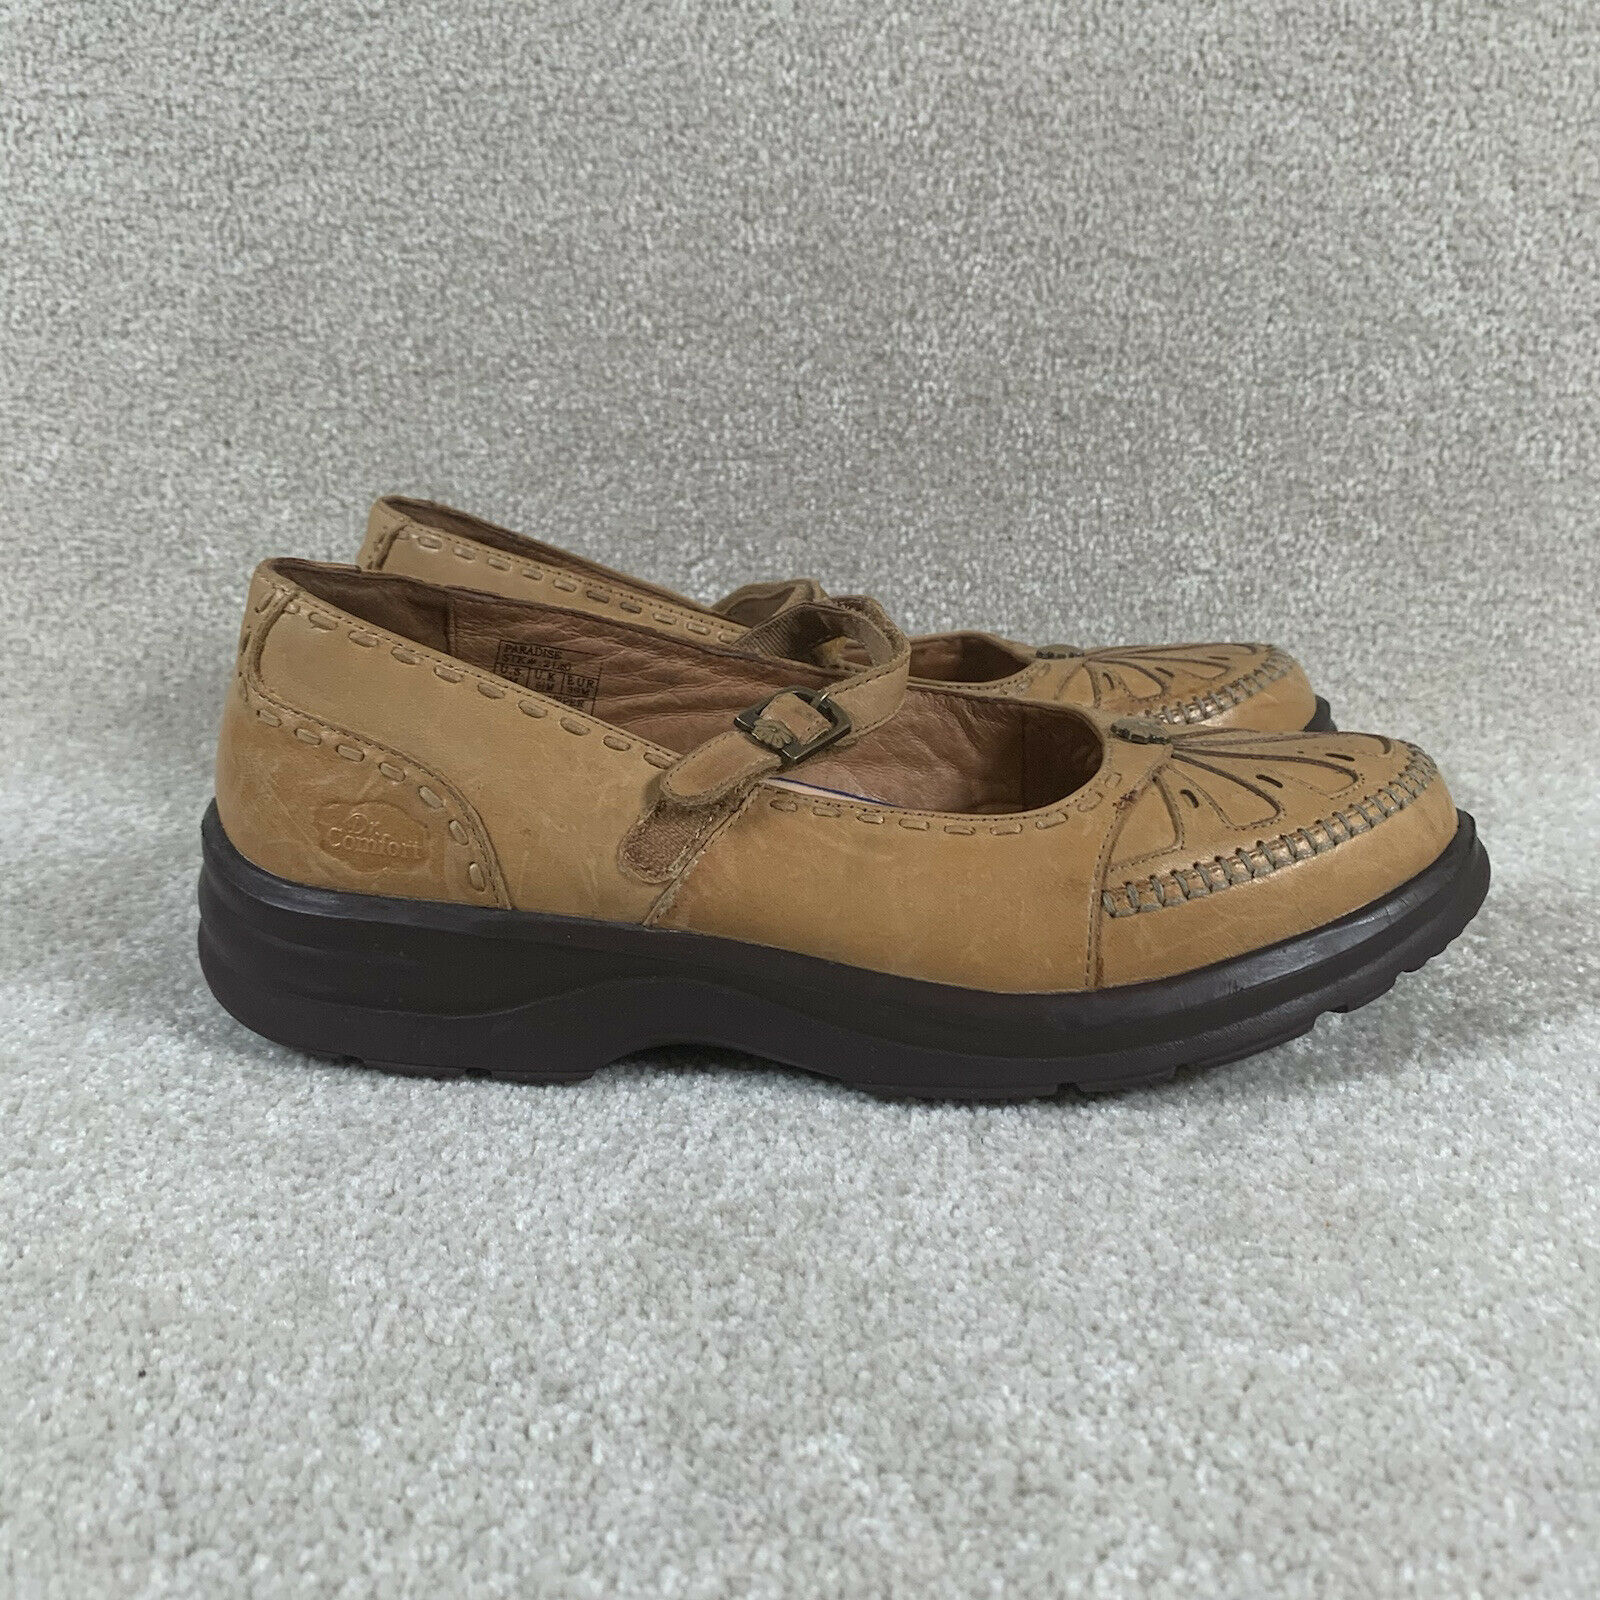 Dr. Comfort Size 9 M Diabetic Mary Jane Shoes Leather Tan / Brown